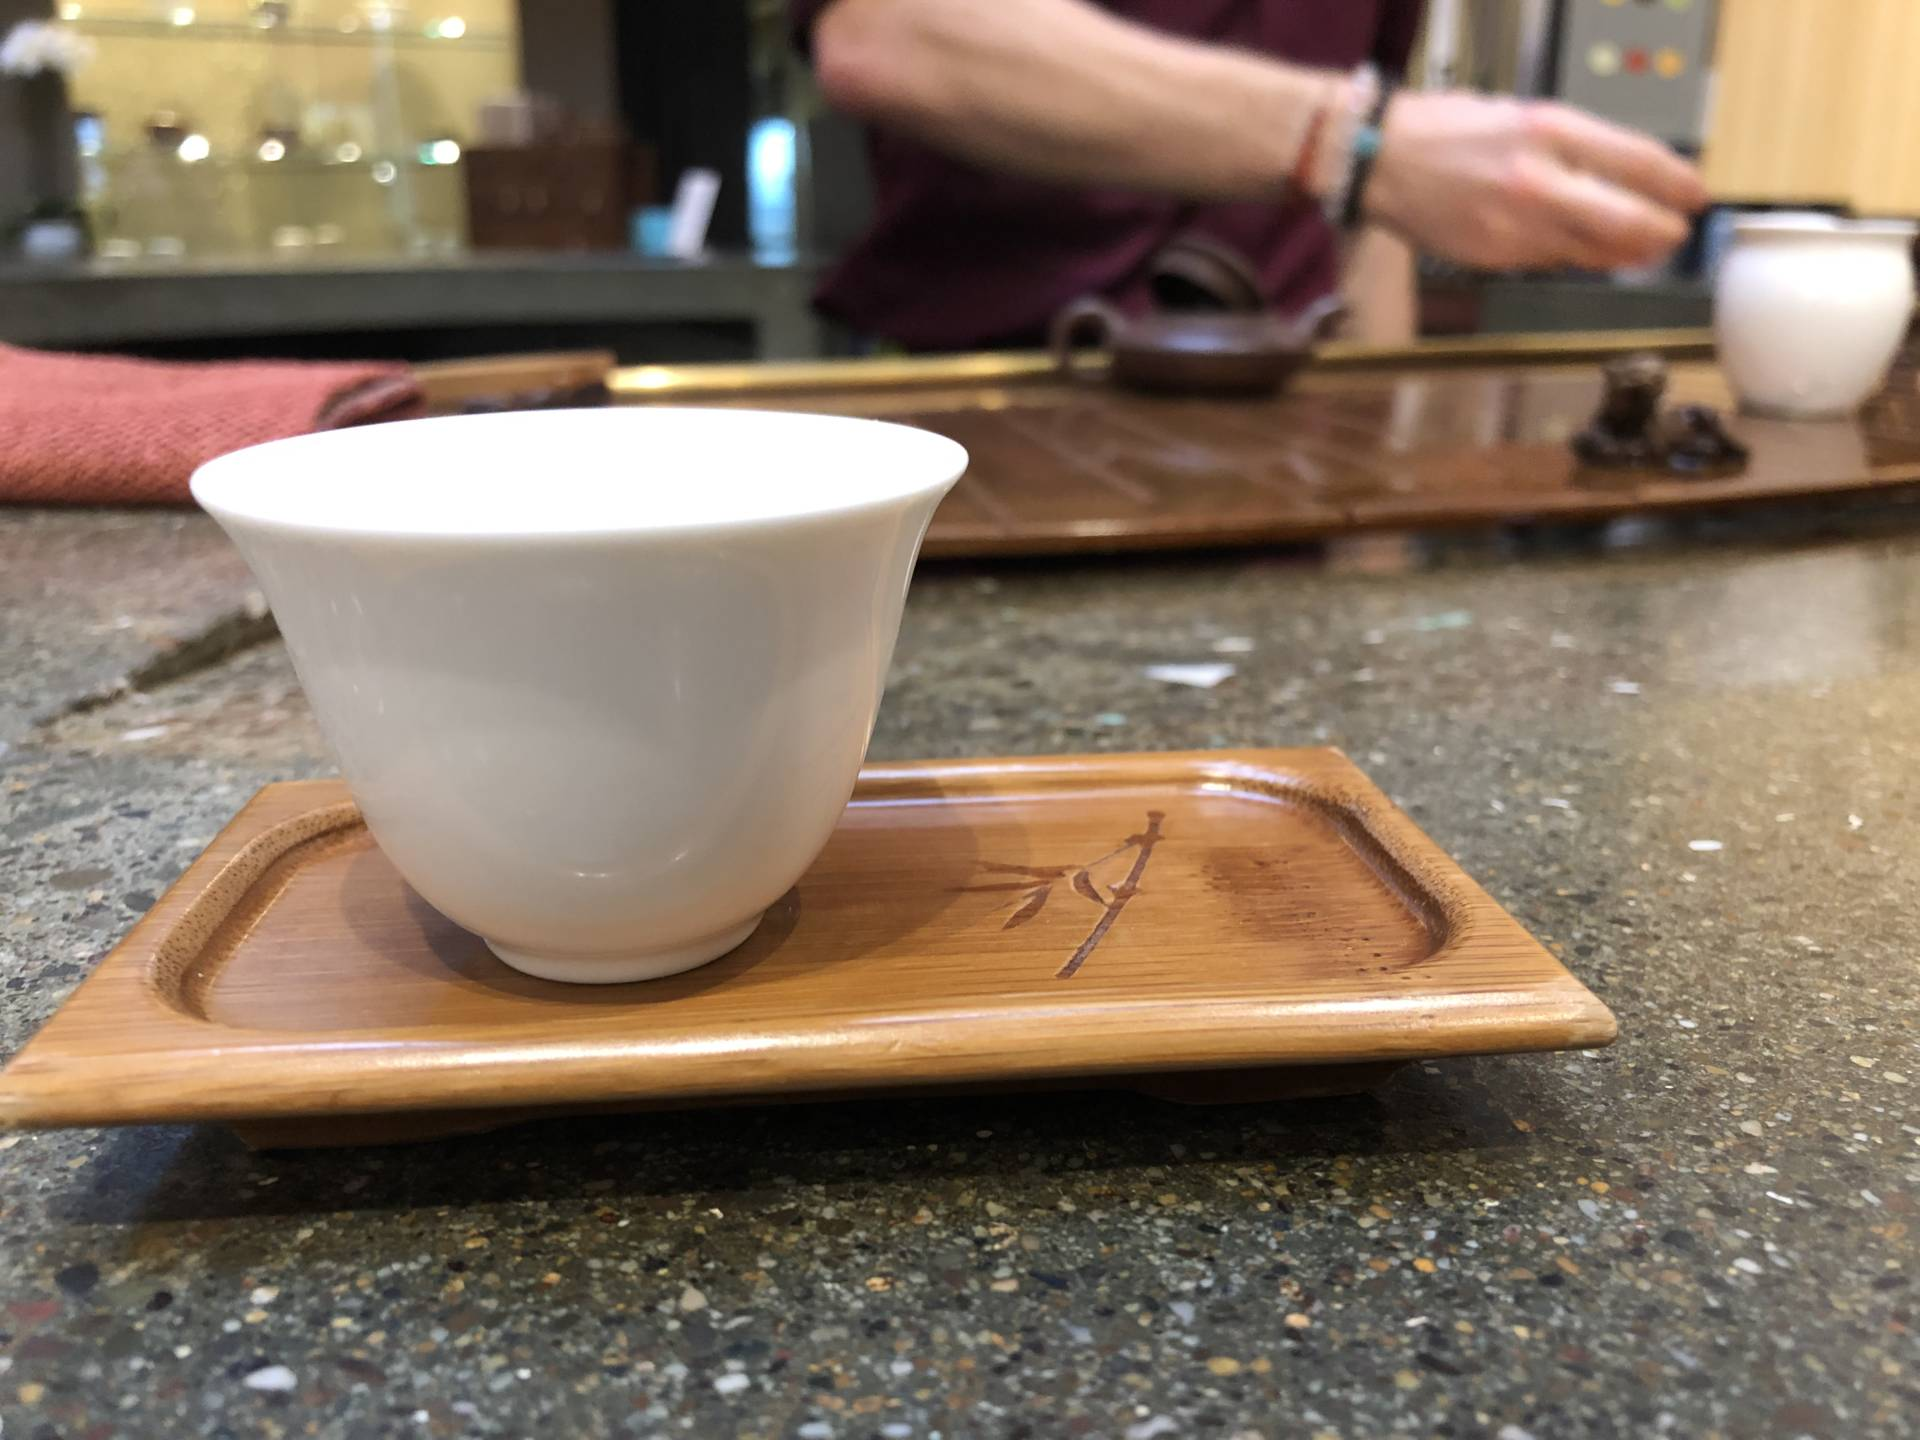 Experience new teas from around the world with a tea flight at Teance Fine Teas.